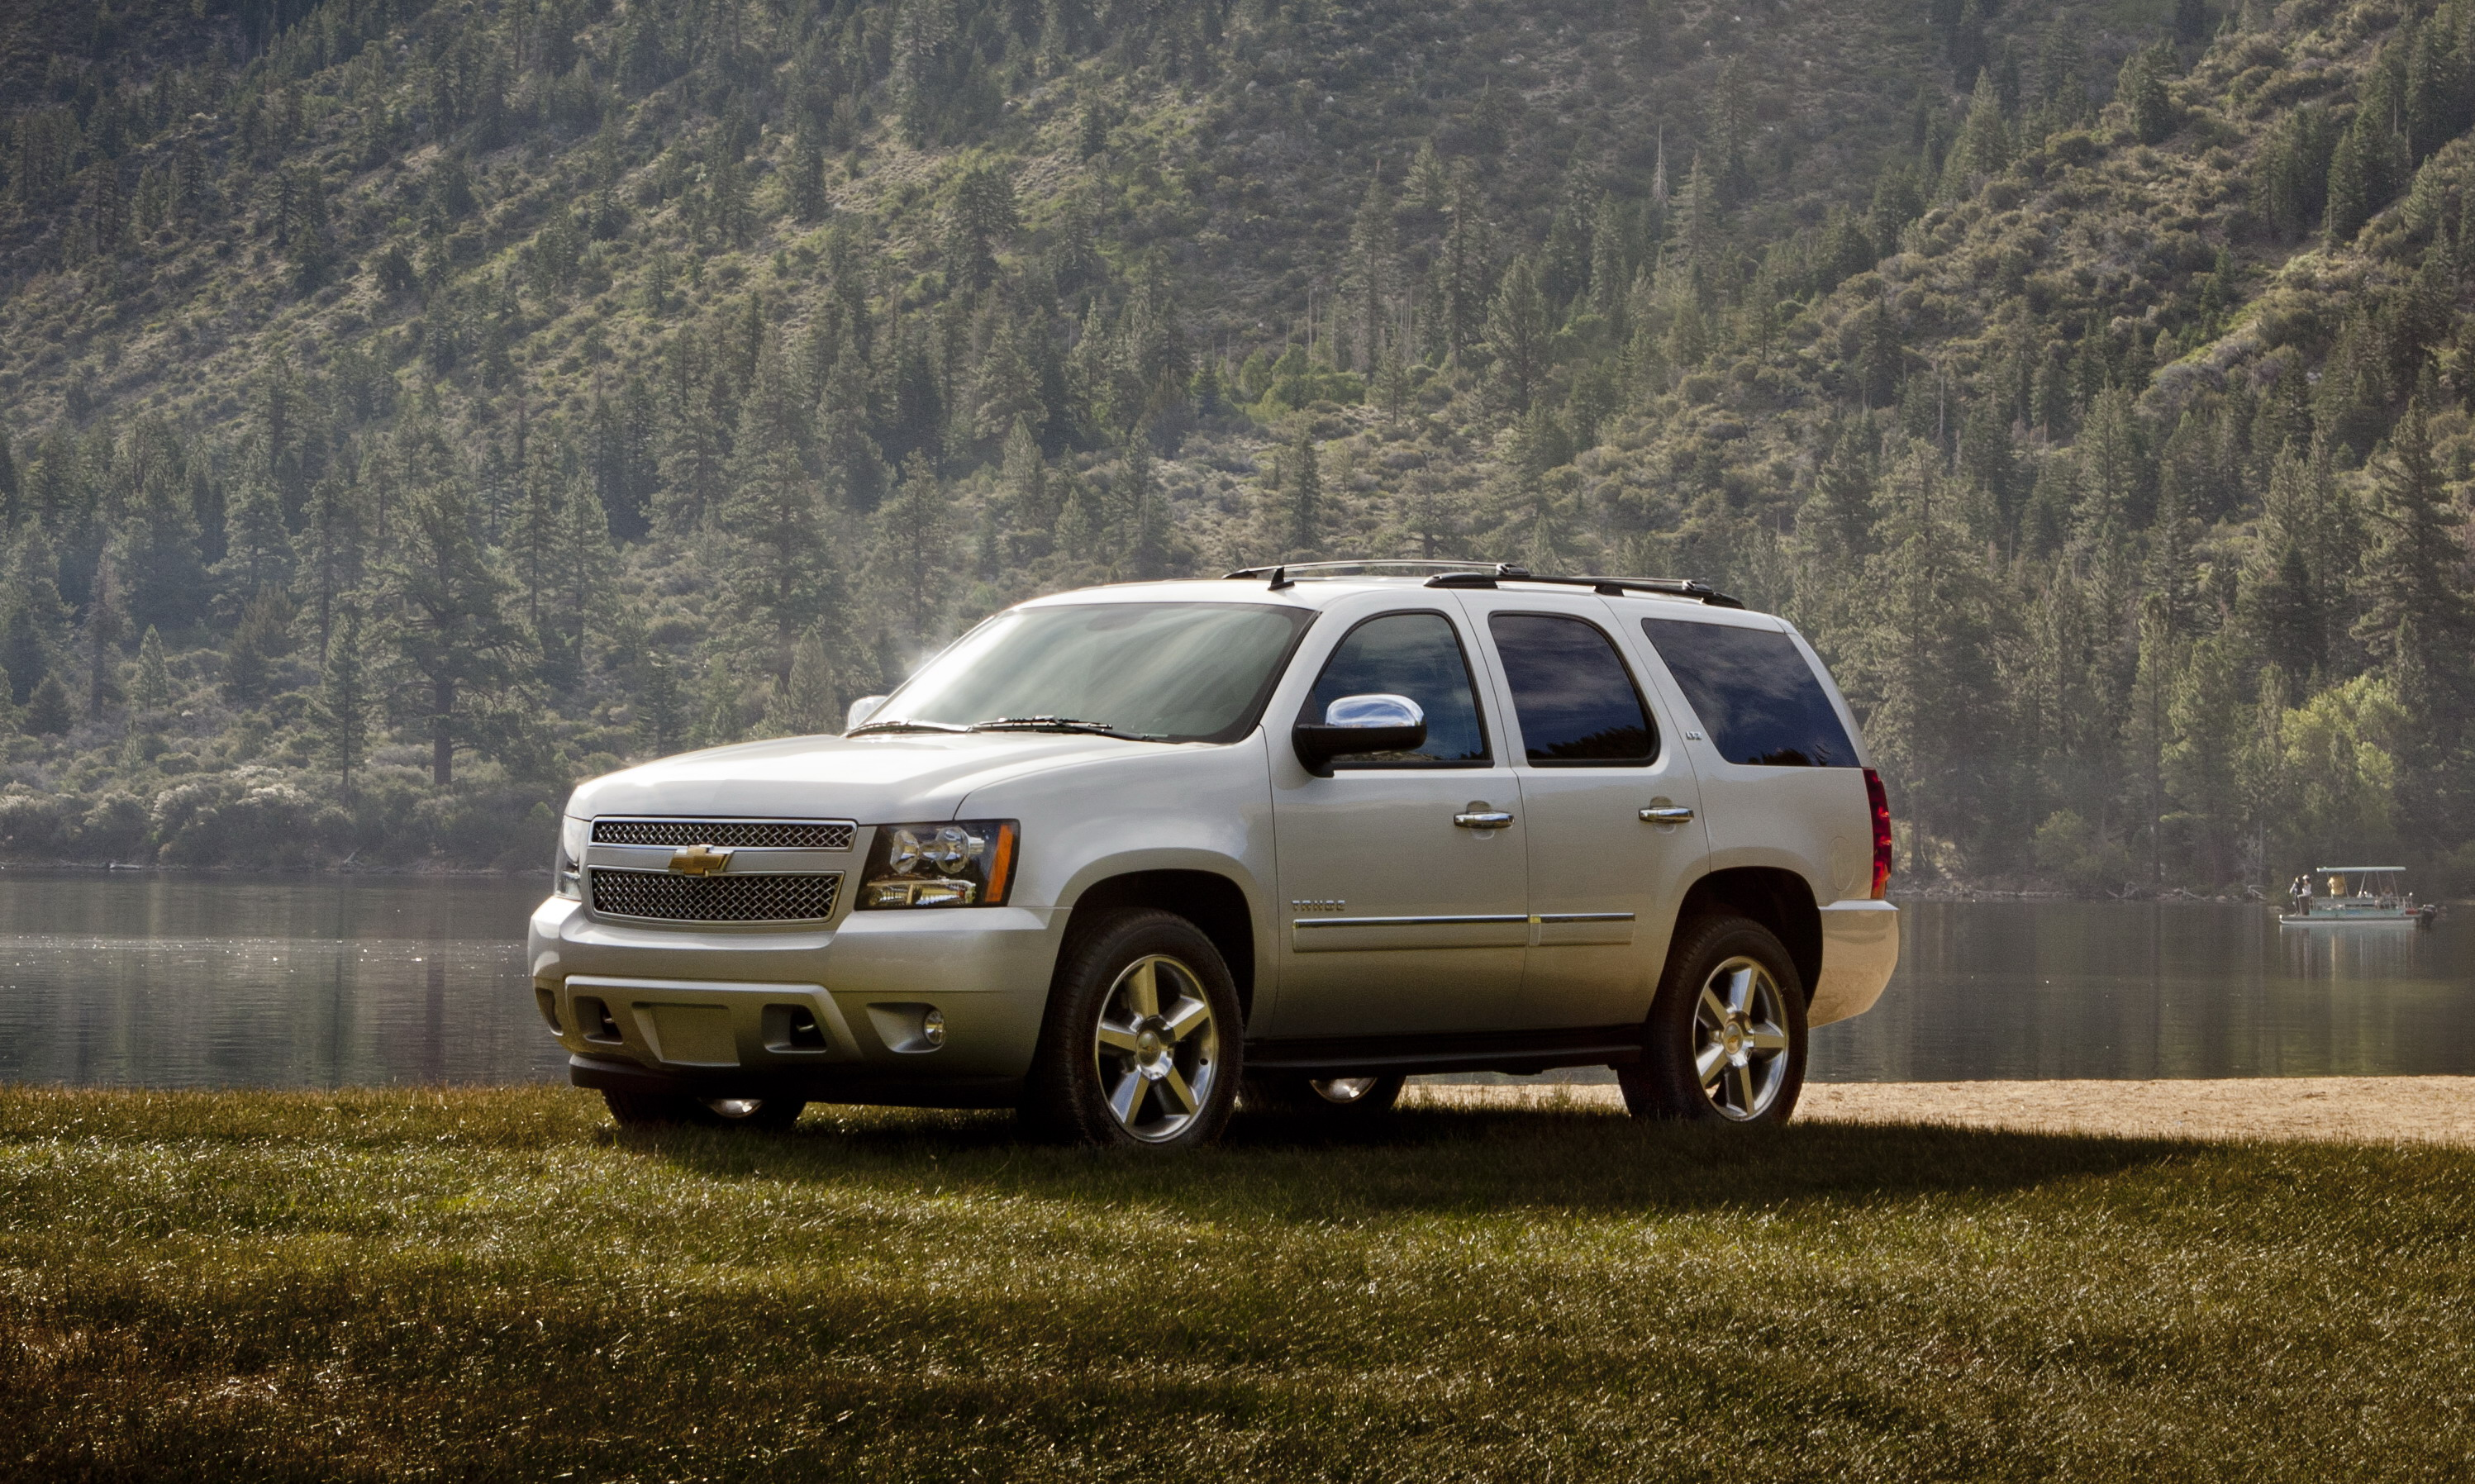 motors chevrolet escalade exterior front pic copyright cargurus view general overview tahoe quarter manufacturer cars cadillac